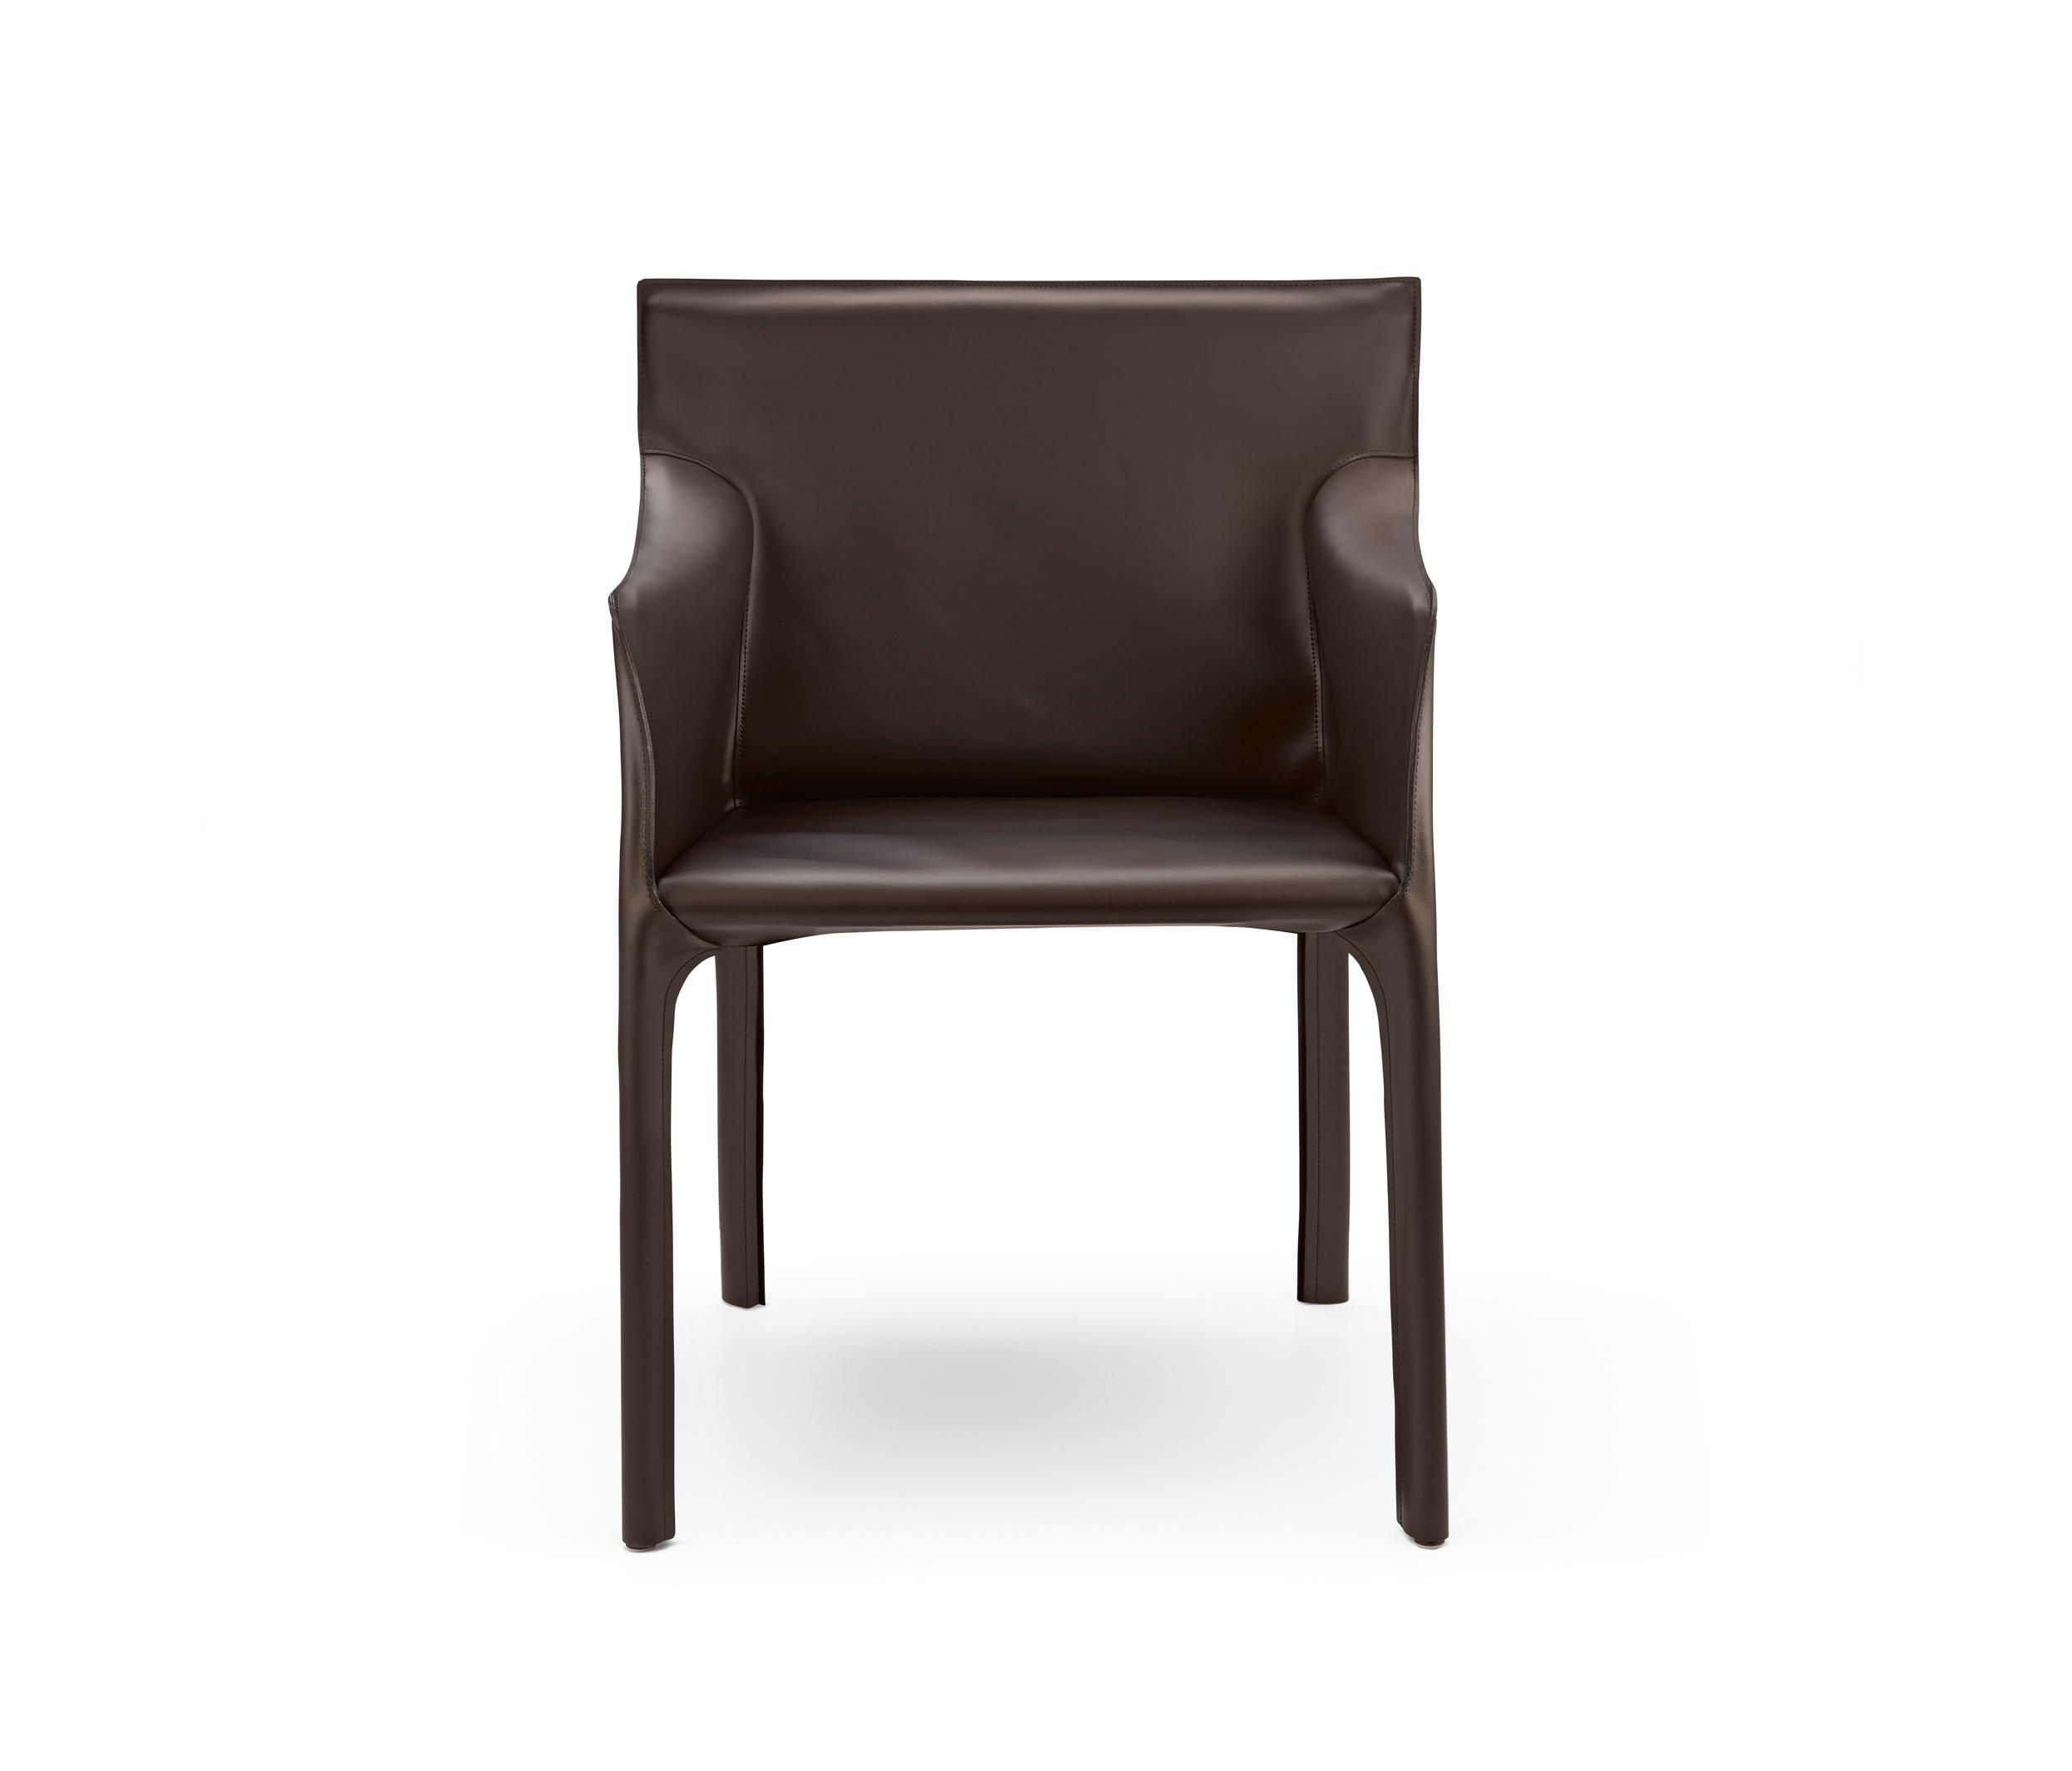 Amazing Saddle Chair By Walter Knoll | Restaurant Chairs